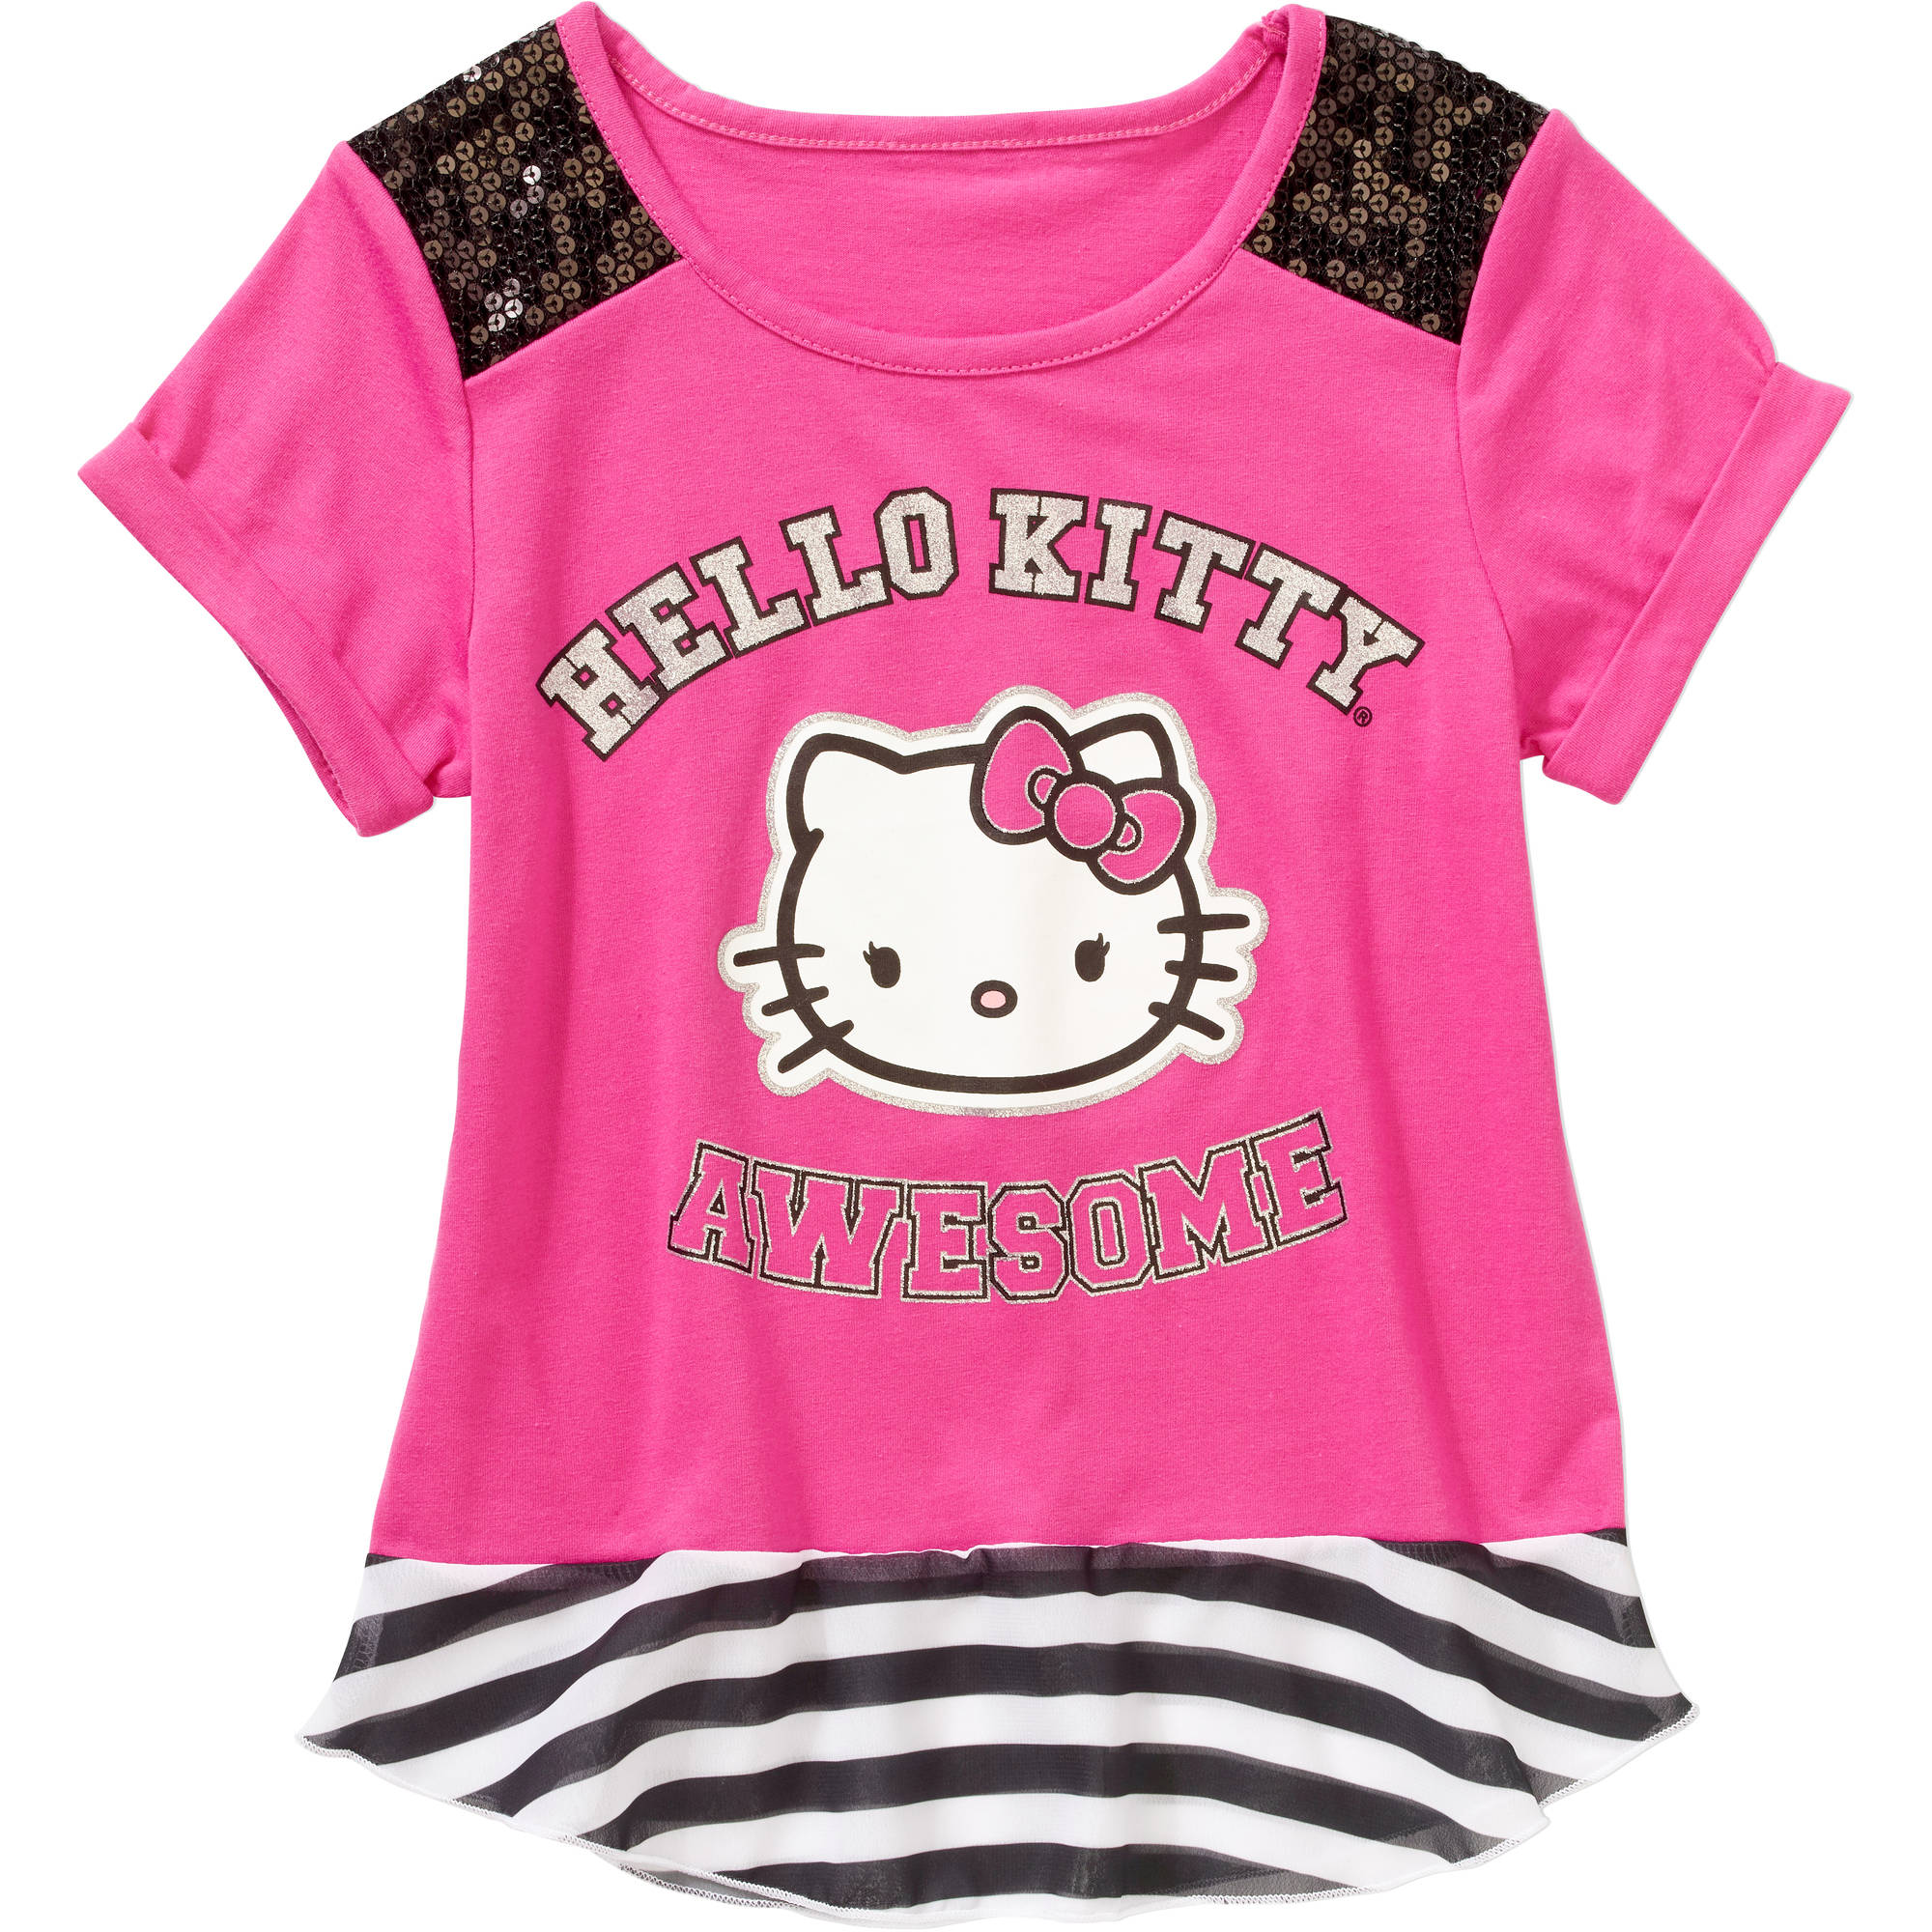 Girls' Short Sleeve Sequence Shoulder Top